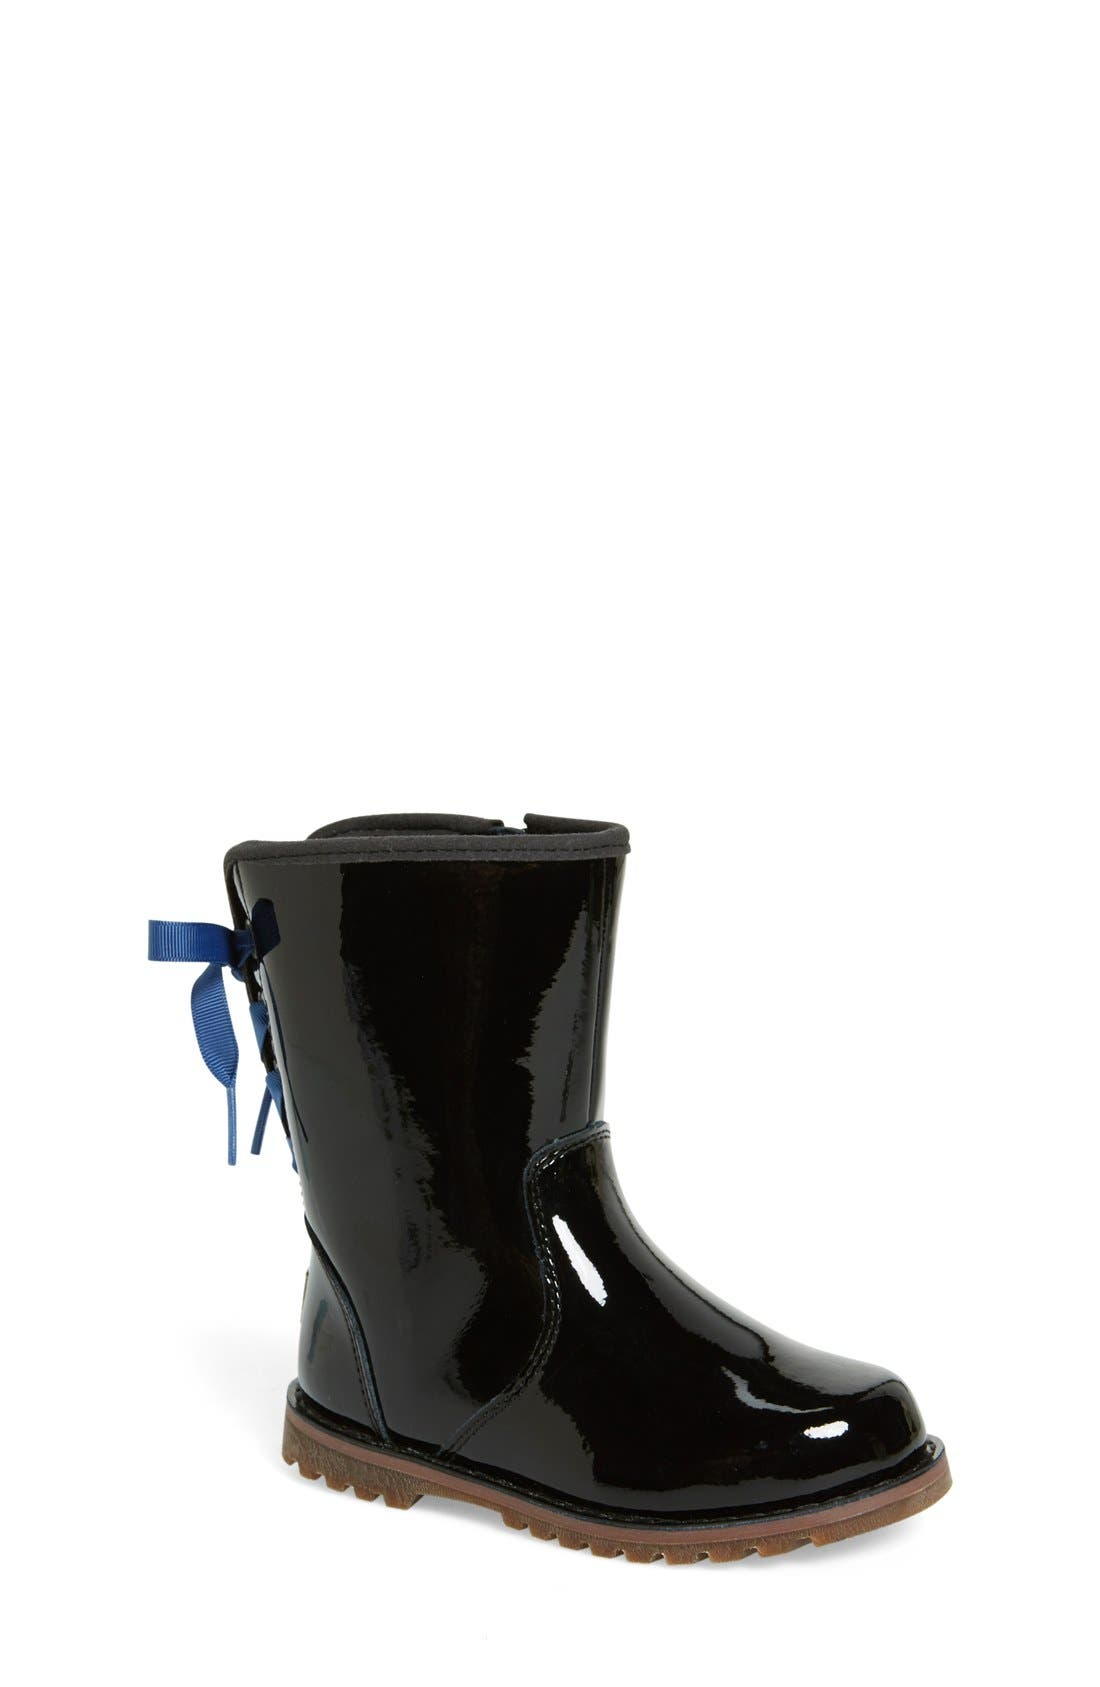 Alternate Image 1 Selected - UGG® Corene Patent Leather Boot (Walker & Toddler)